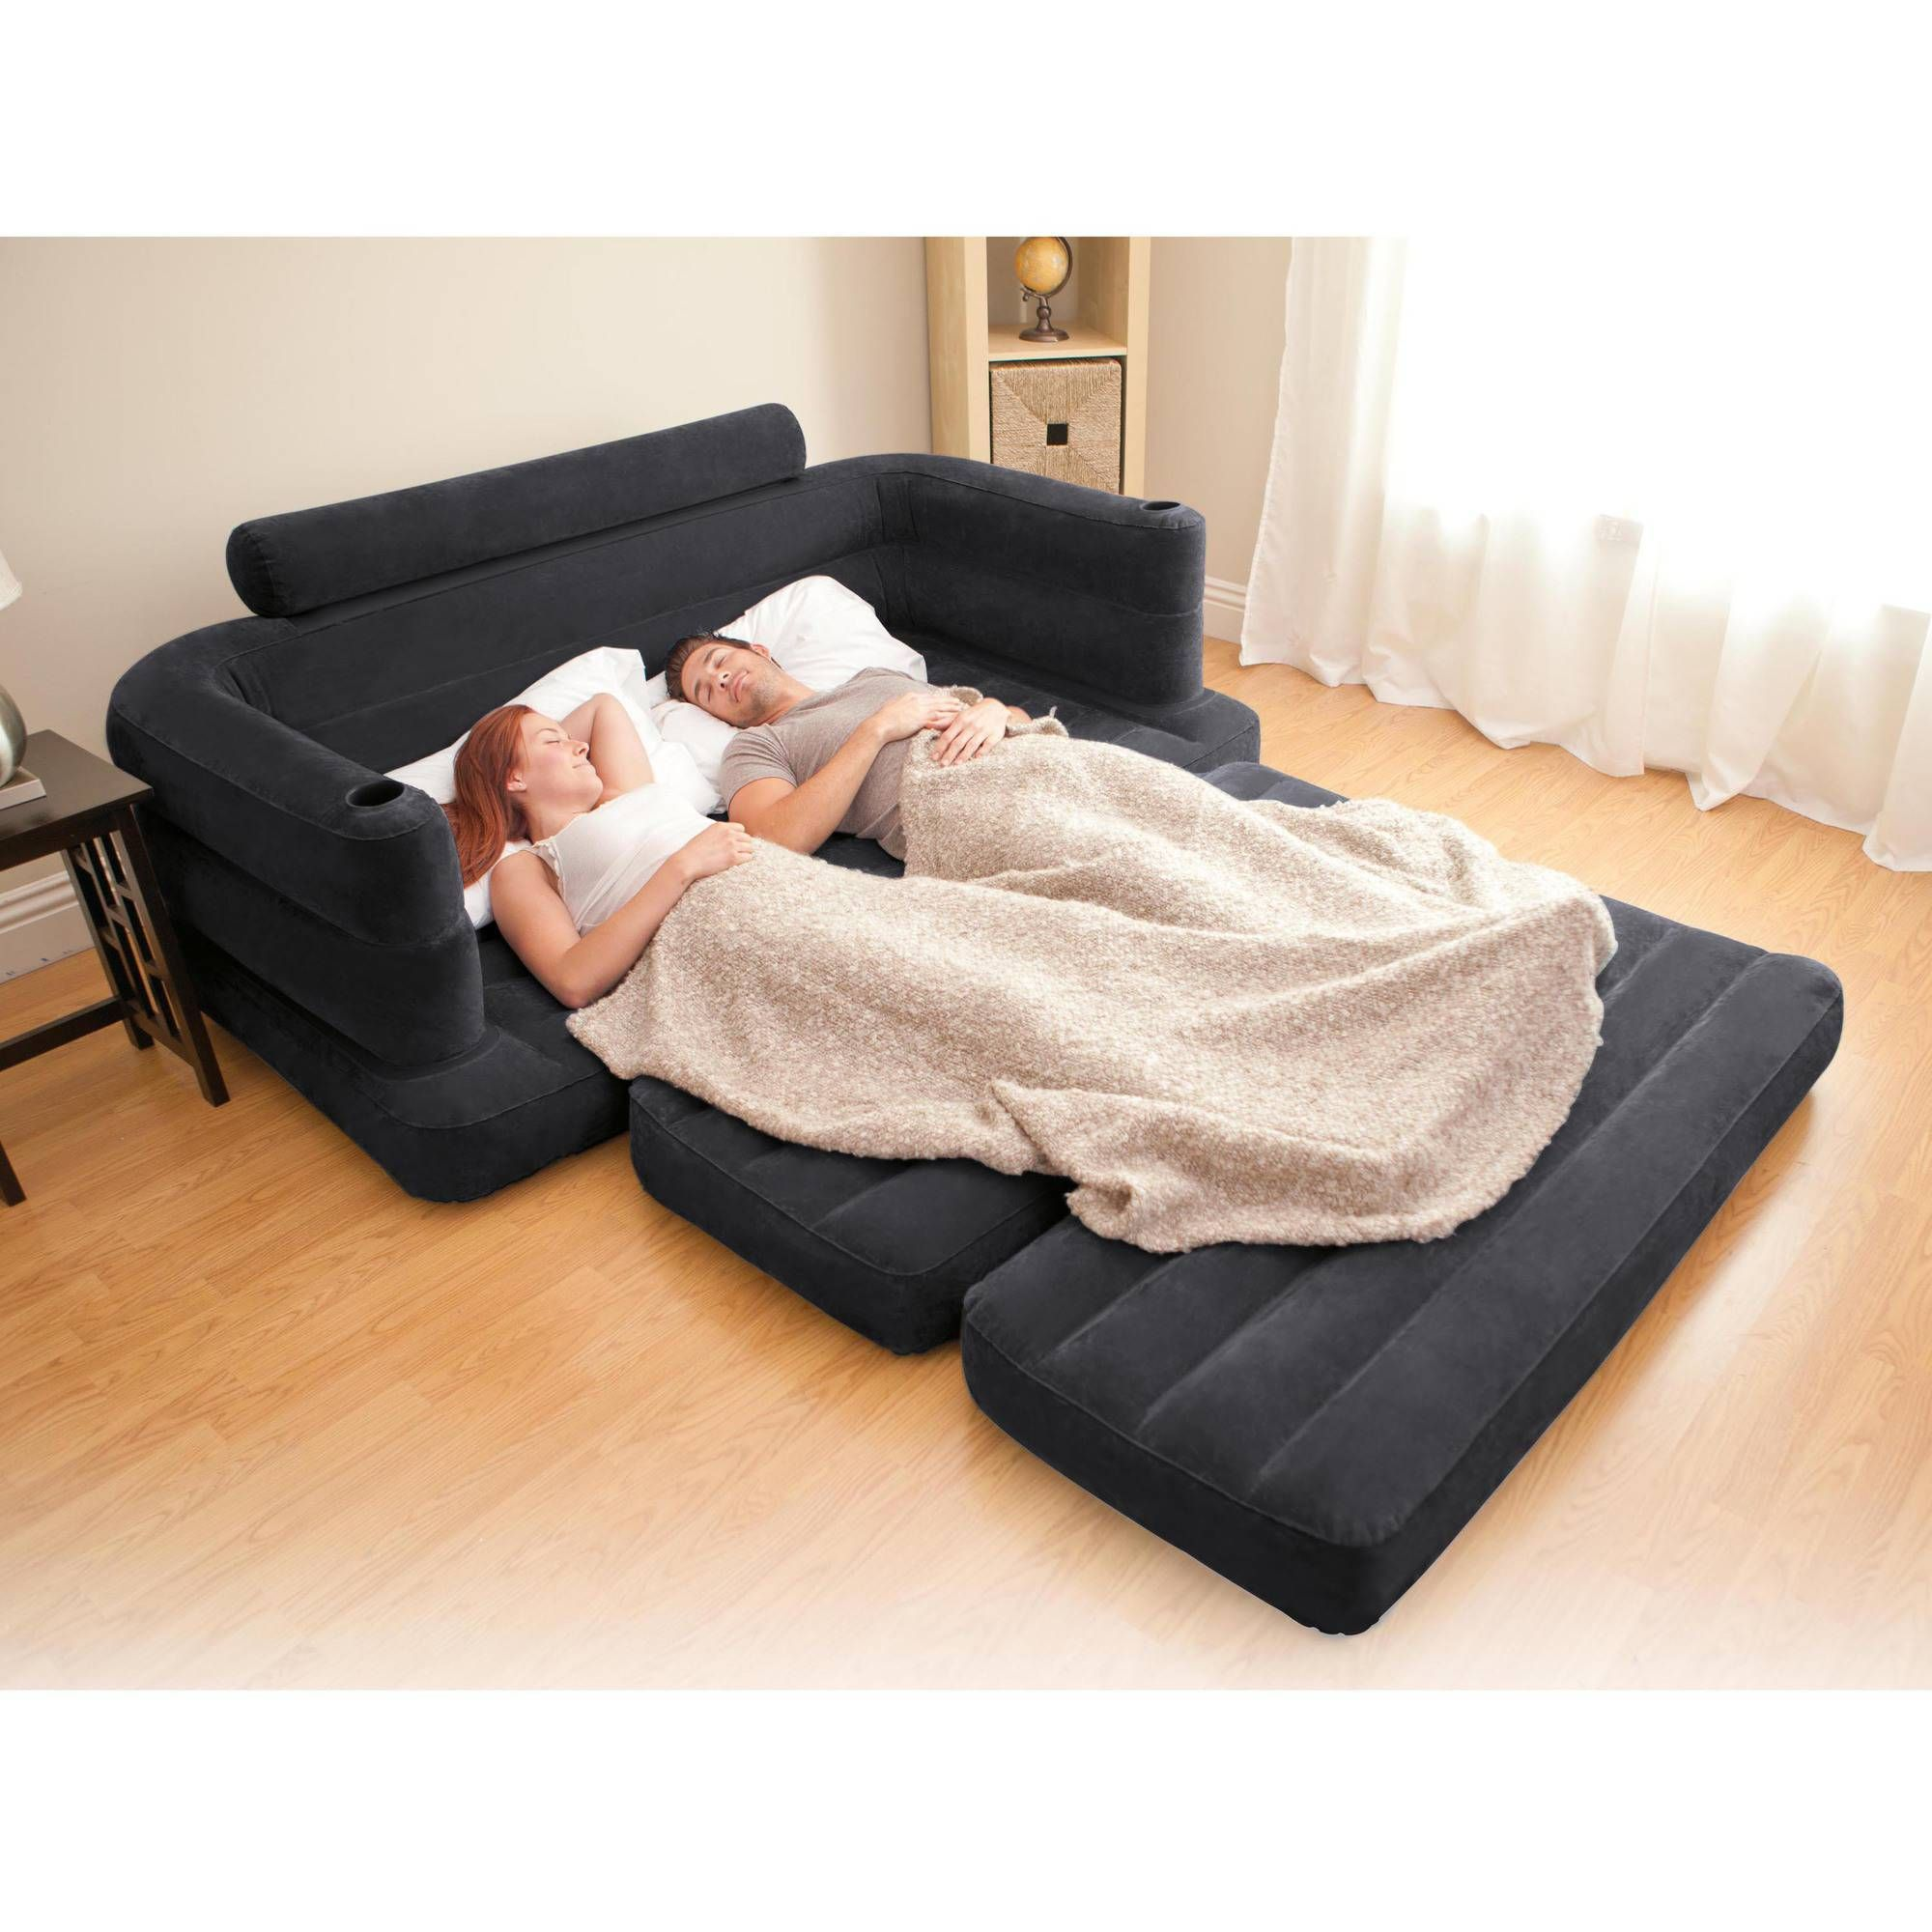 Inflatable foldable sofa with multi functional you can put it in